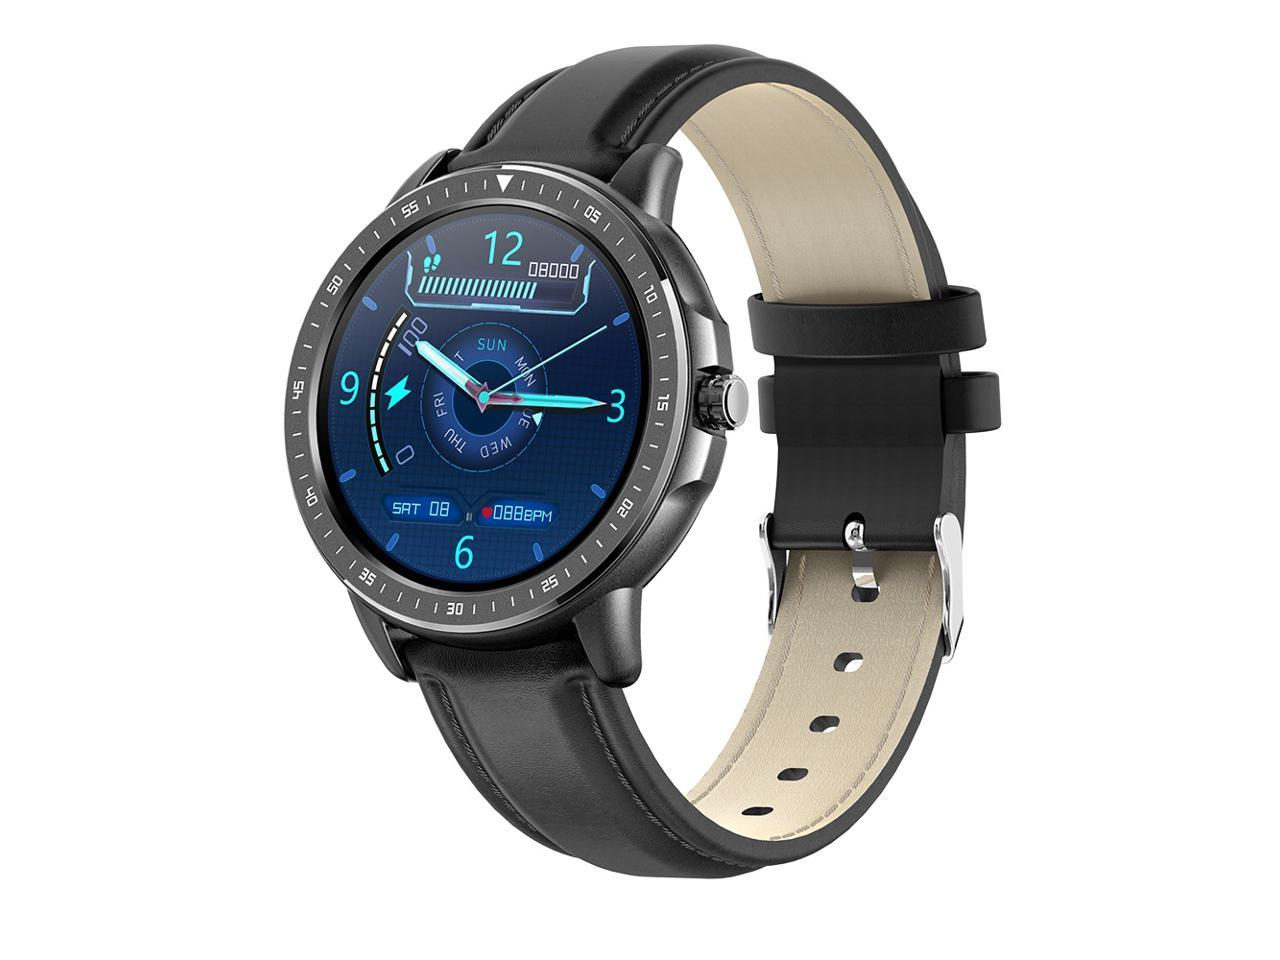 """Smartwatch Band HD Display 1.3/"""" Touch Screen Light Android iOS Series BLACK HQ"""